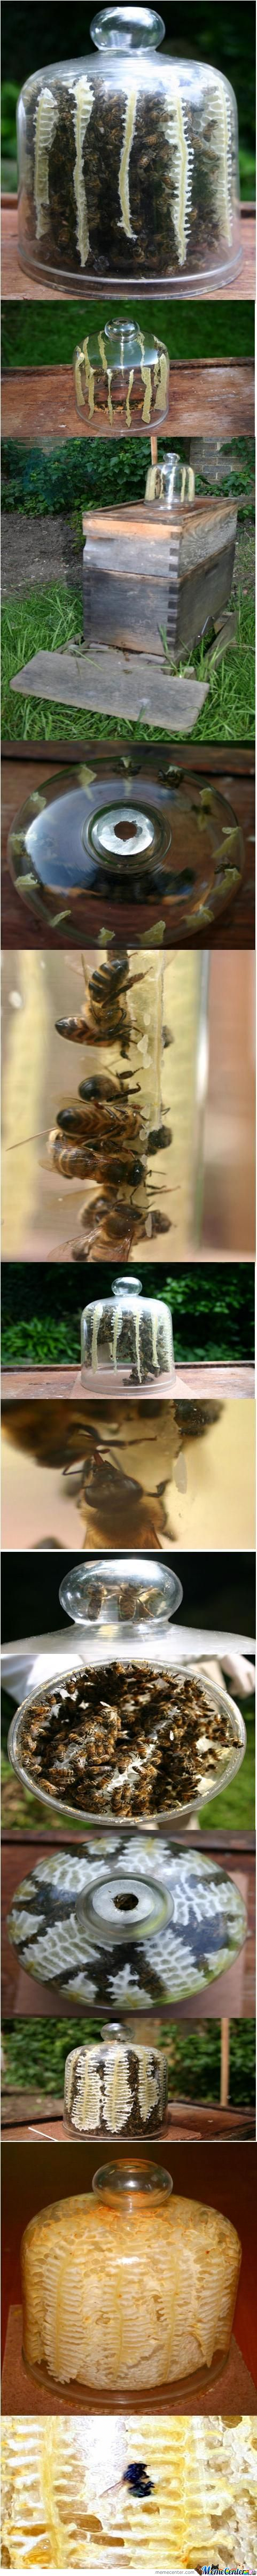 Beeshive In Jar